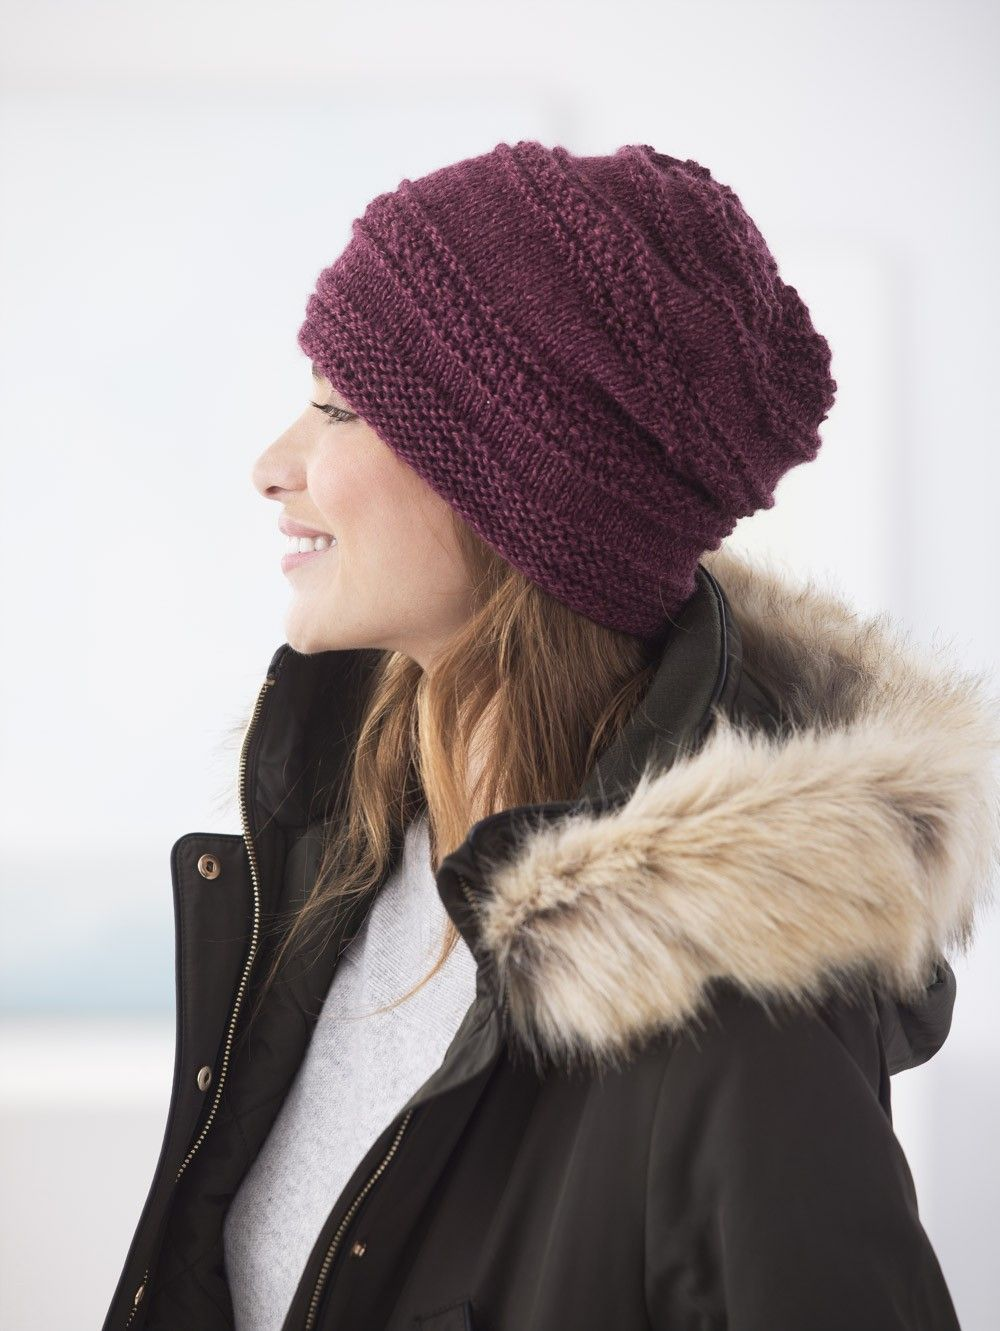 Leisure Arts-Crochet Celebrity Slouchy Beanies | JOANN